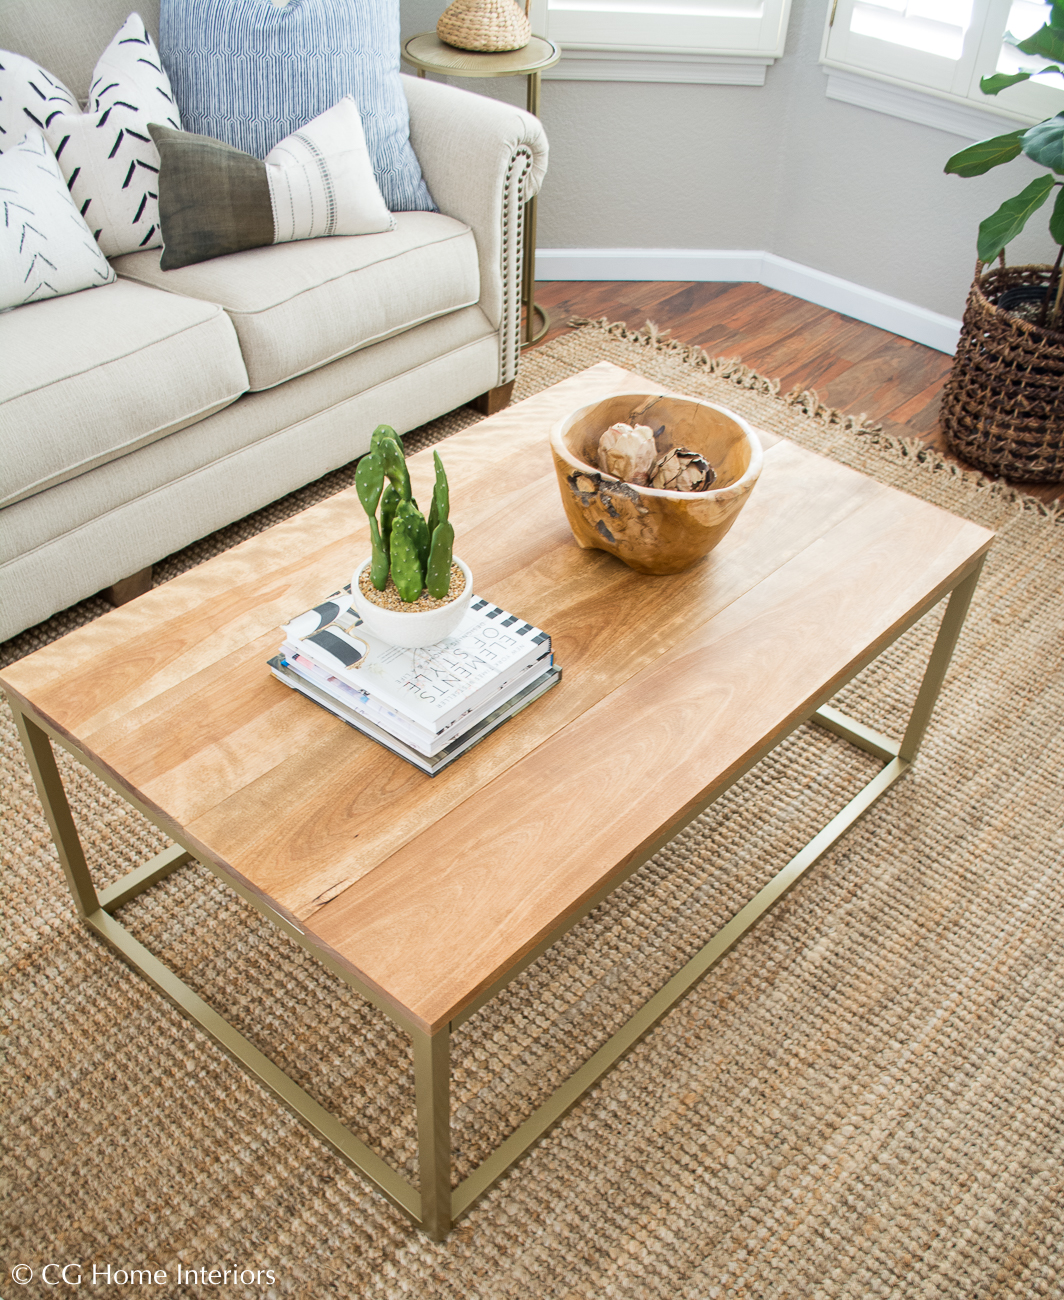 DIY Gold and Wood Coffee Table